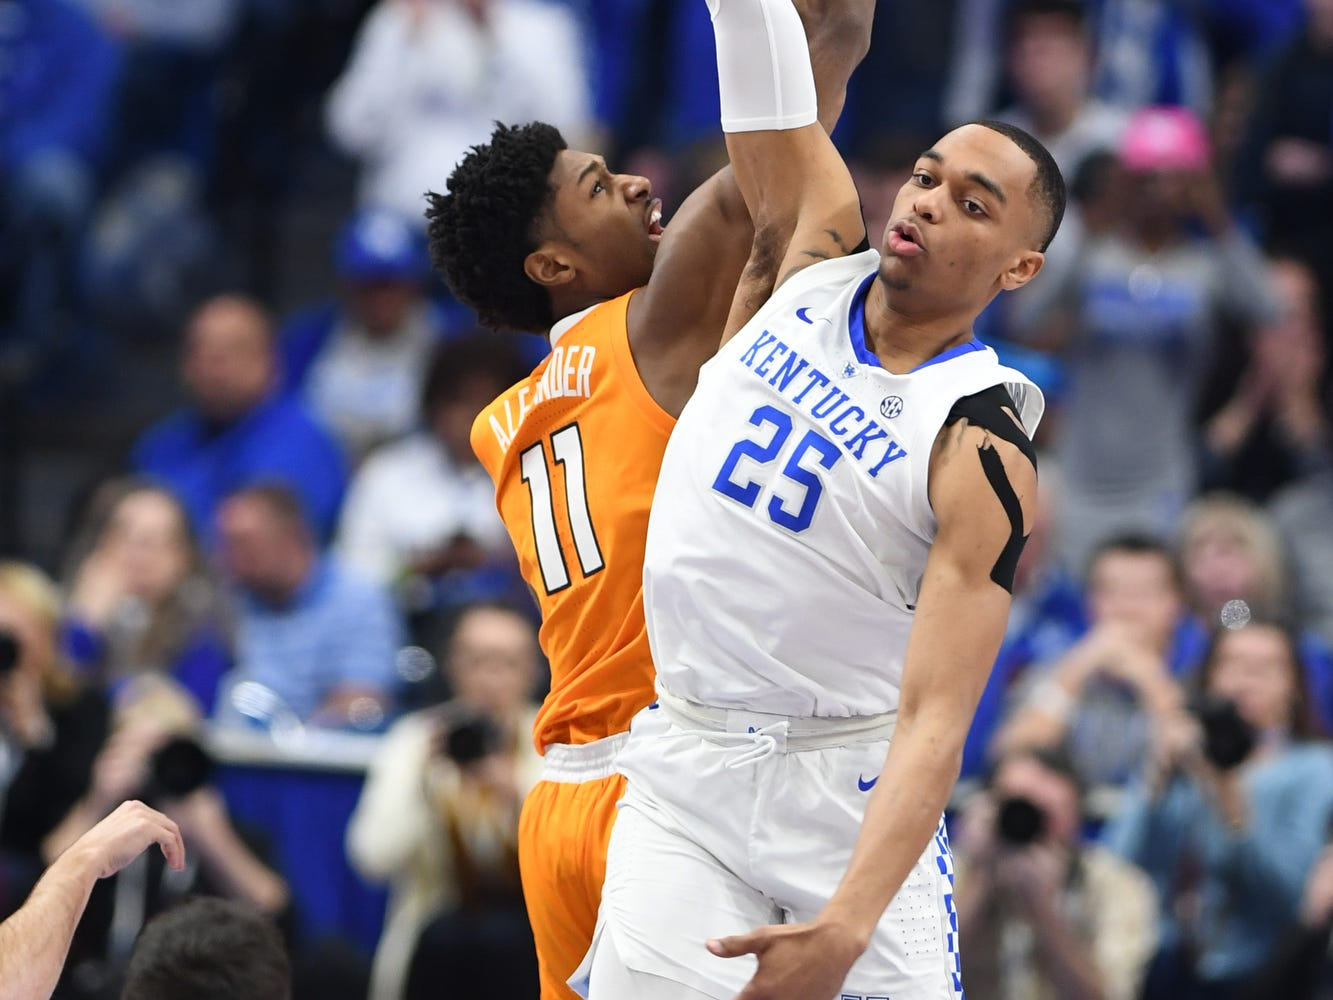 UK F PJ Washington wins the tip off during the University of Kentucky mens basketball game against Tennessee at Rupp Arena in Lexington, Kentucky on Saturday, February 16, 2019.